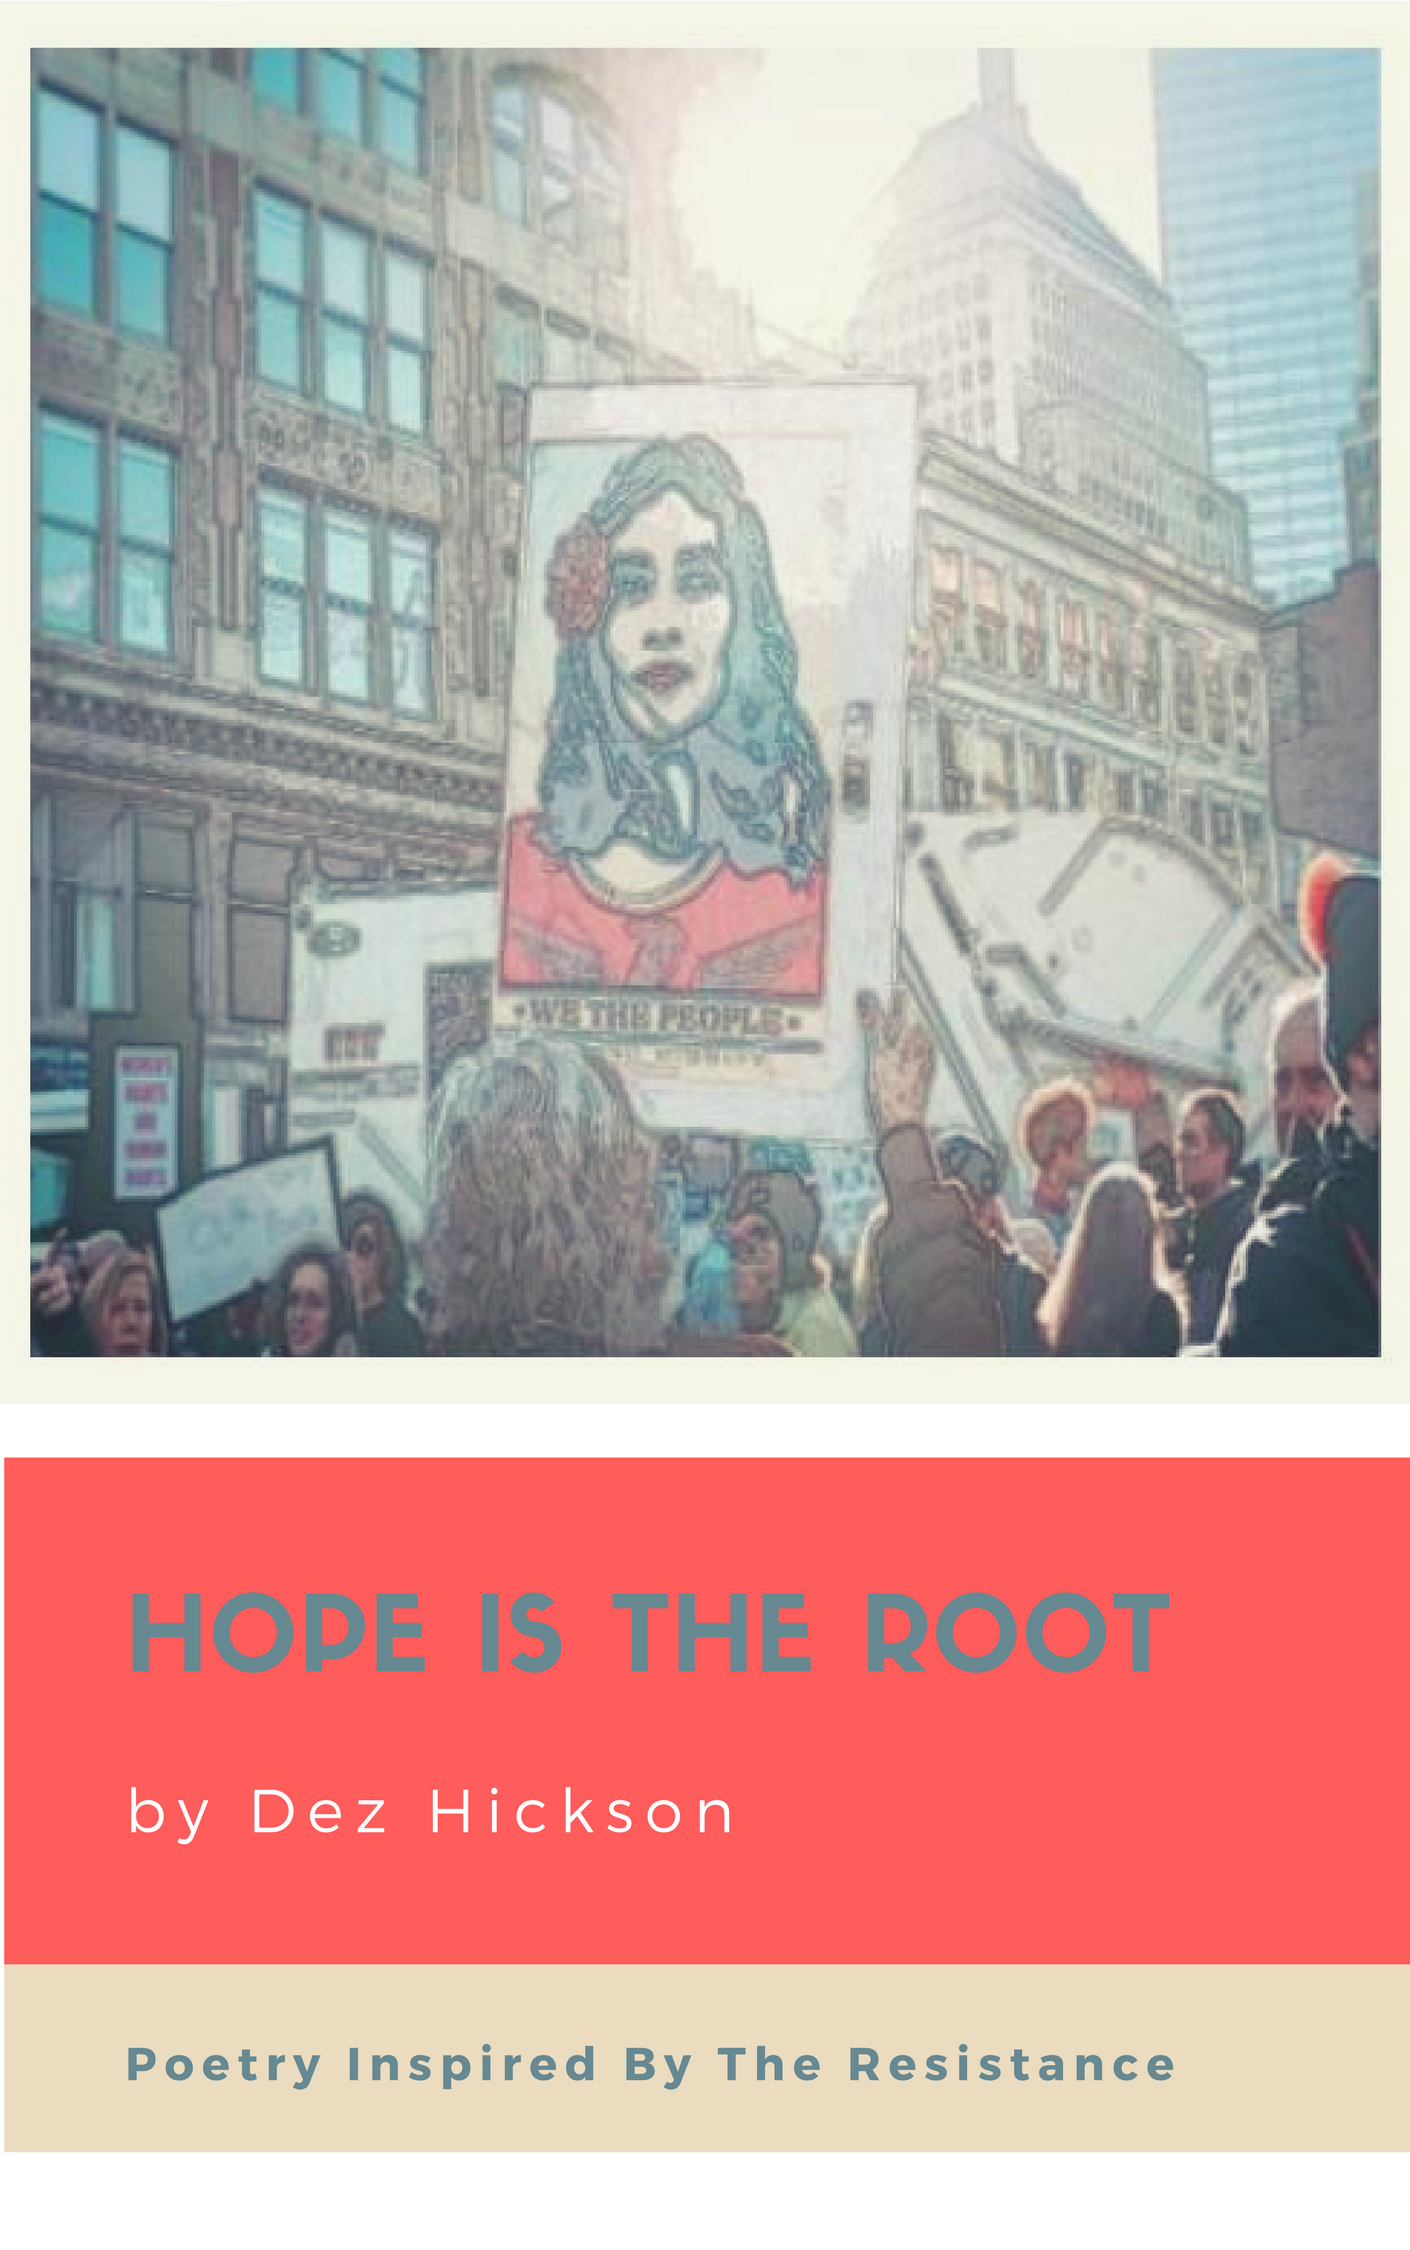 Hope Is The Root: Poetry Inspired by The Resistance